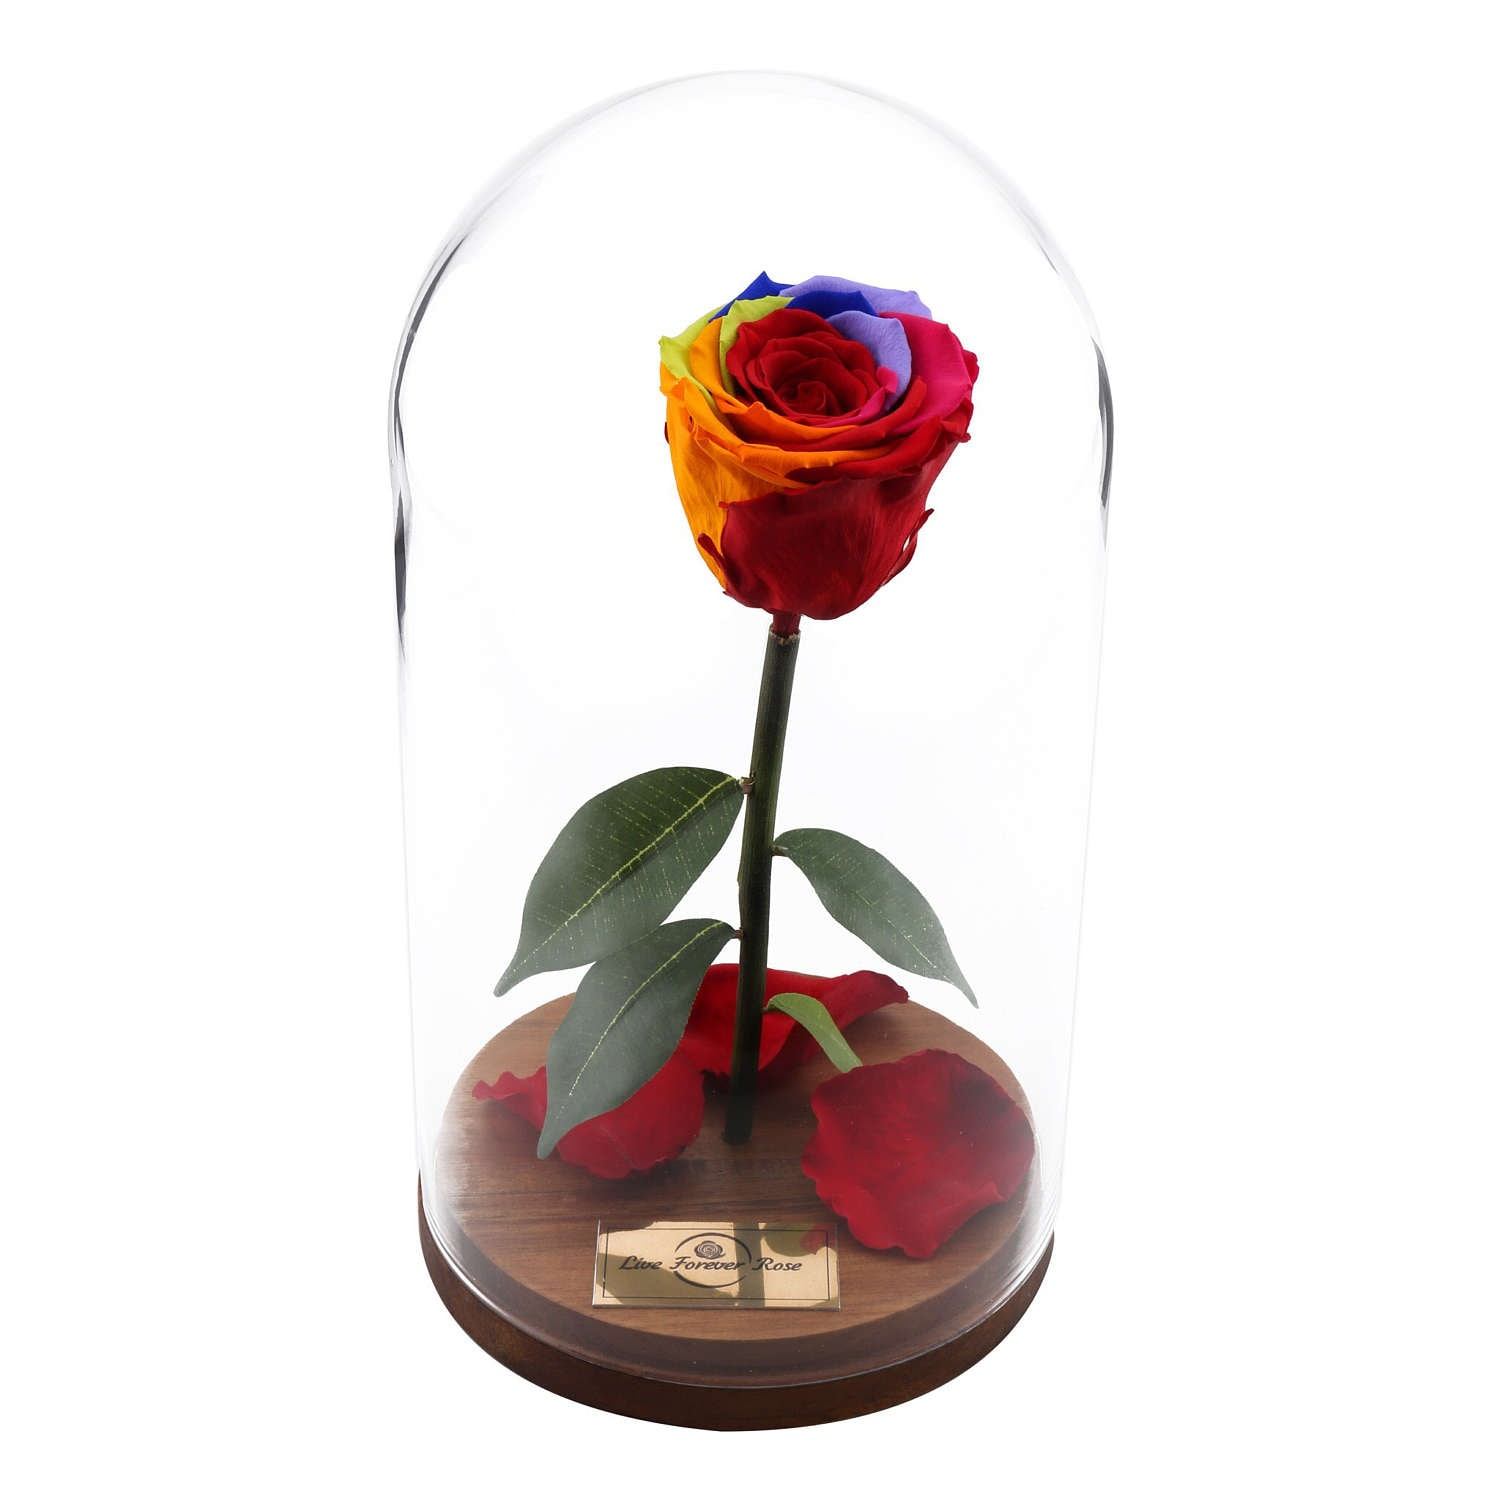 beauty and the beast rose live forever rose in glass mothers. Black Bedroom Furniture Sets. Home Design Ideas